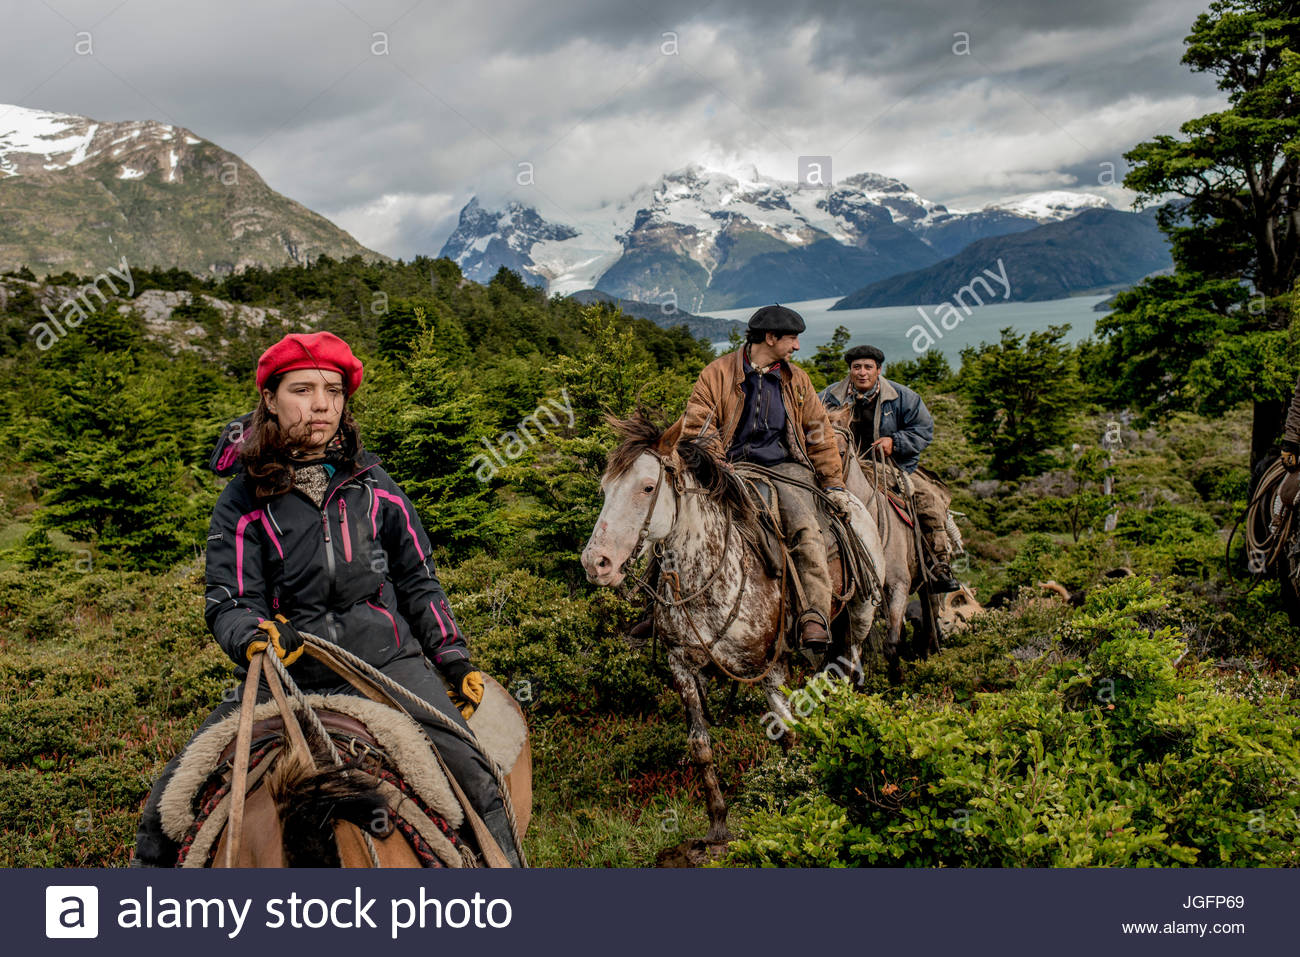 Bagualeros, cowboys who capture feral livestock, on an expedition with their dogs. - Stock Image